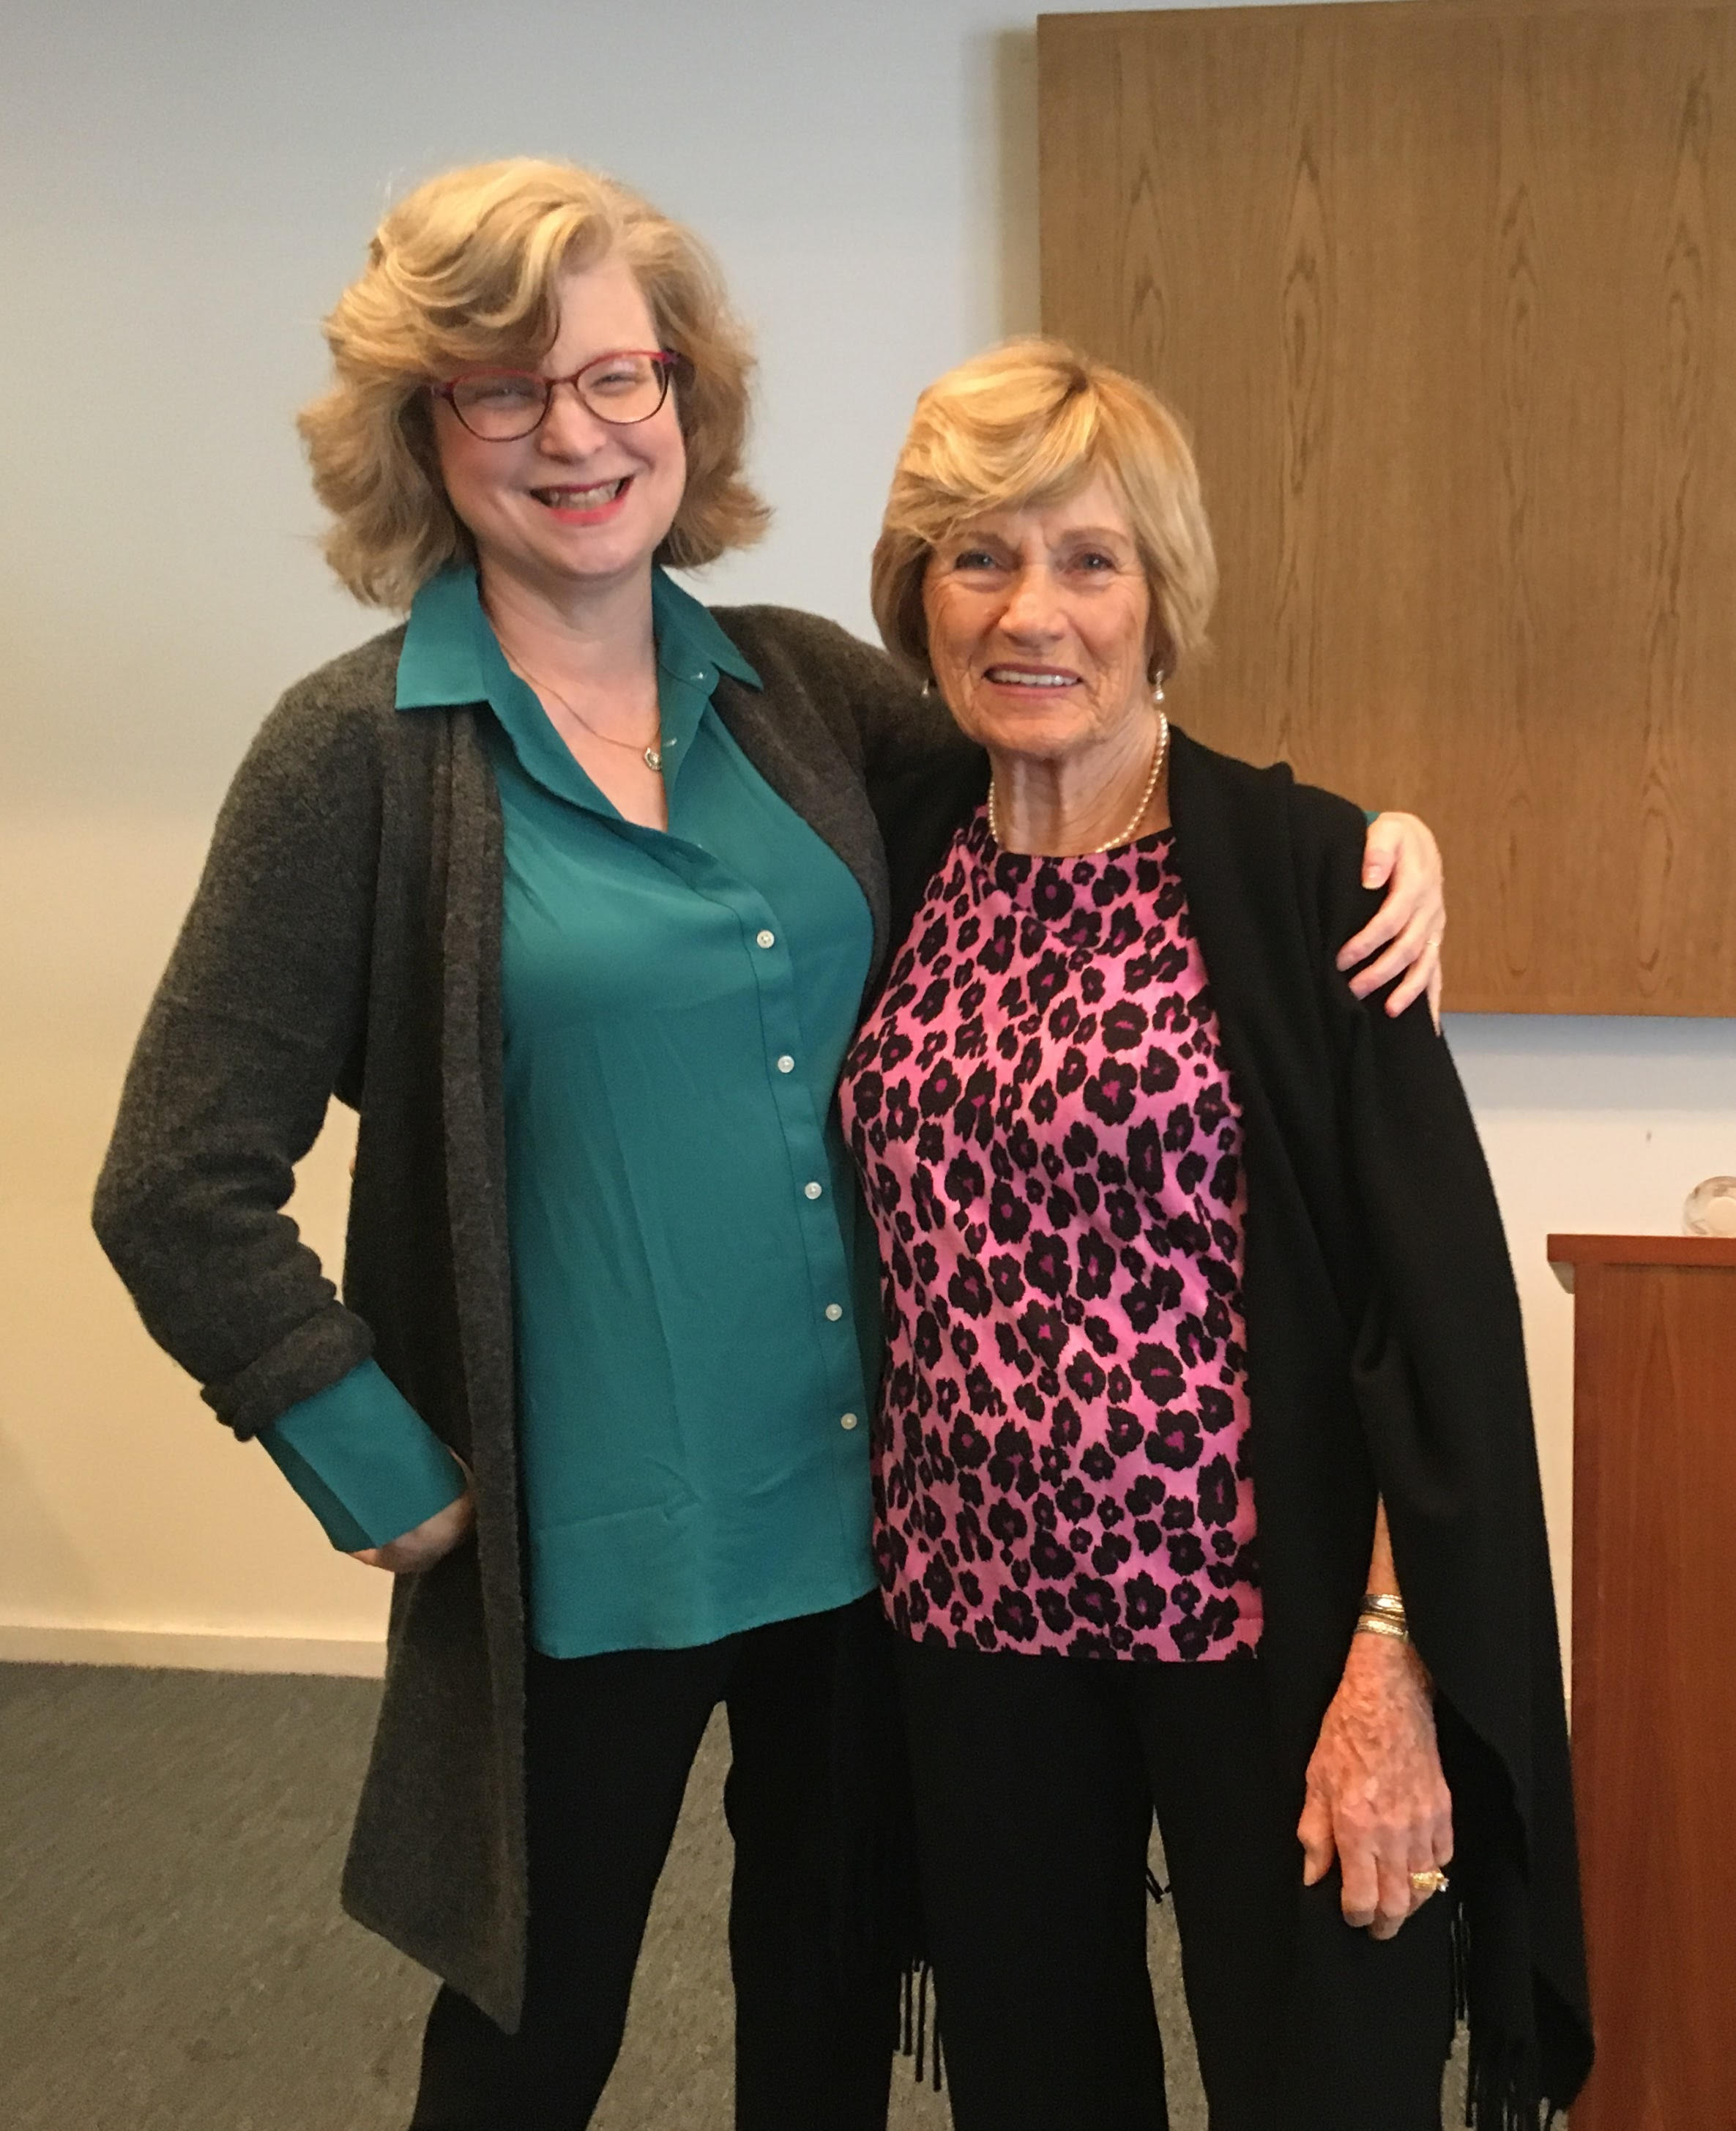 Beth Holmgren and Christine Stamper, reading in Newport Beach, California, March 10, 2018